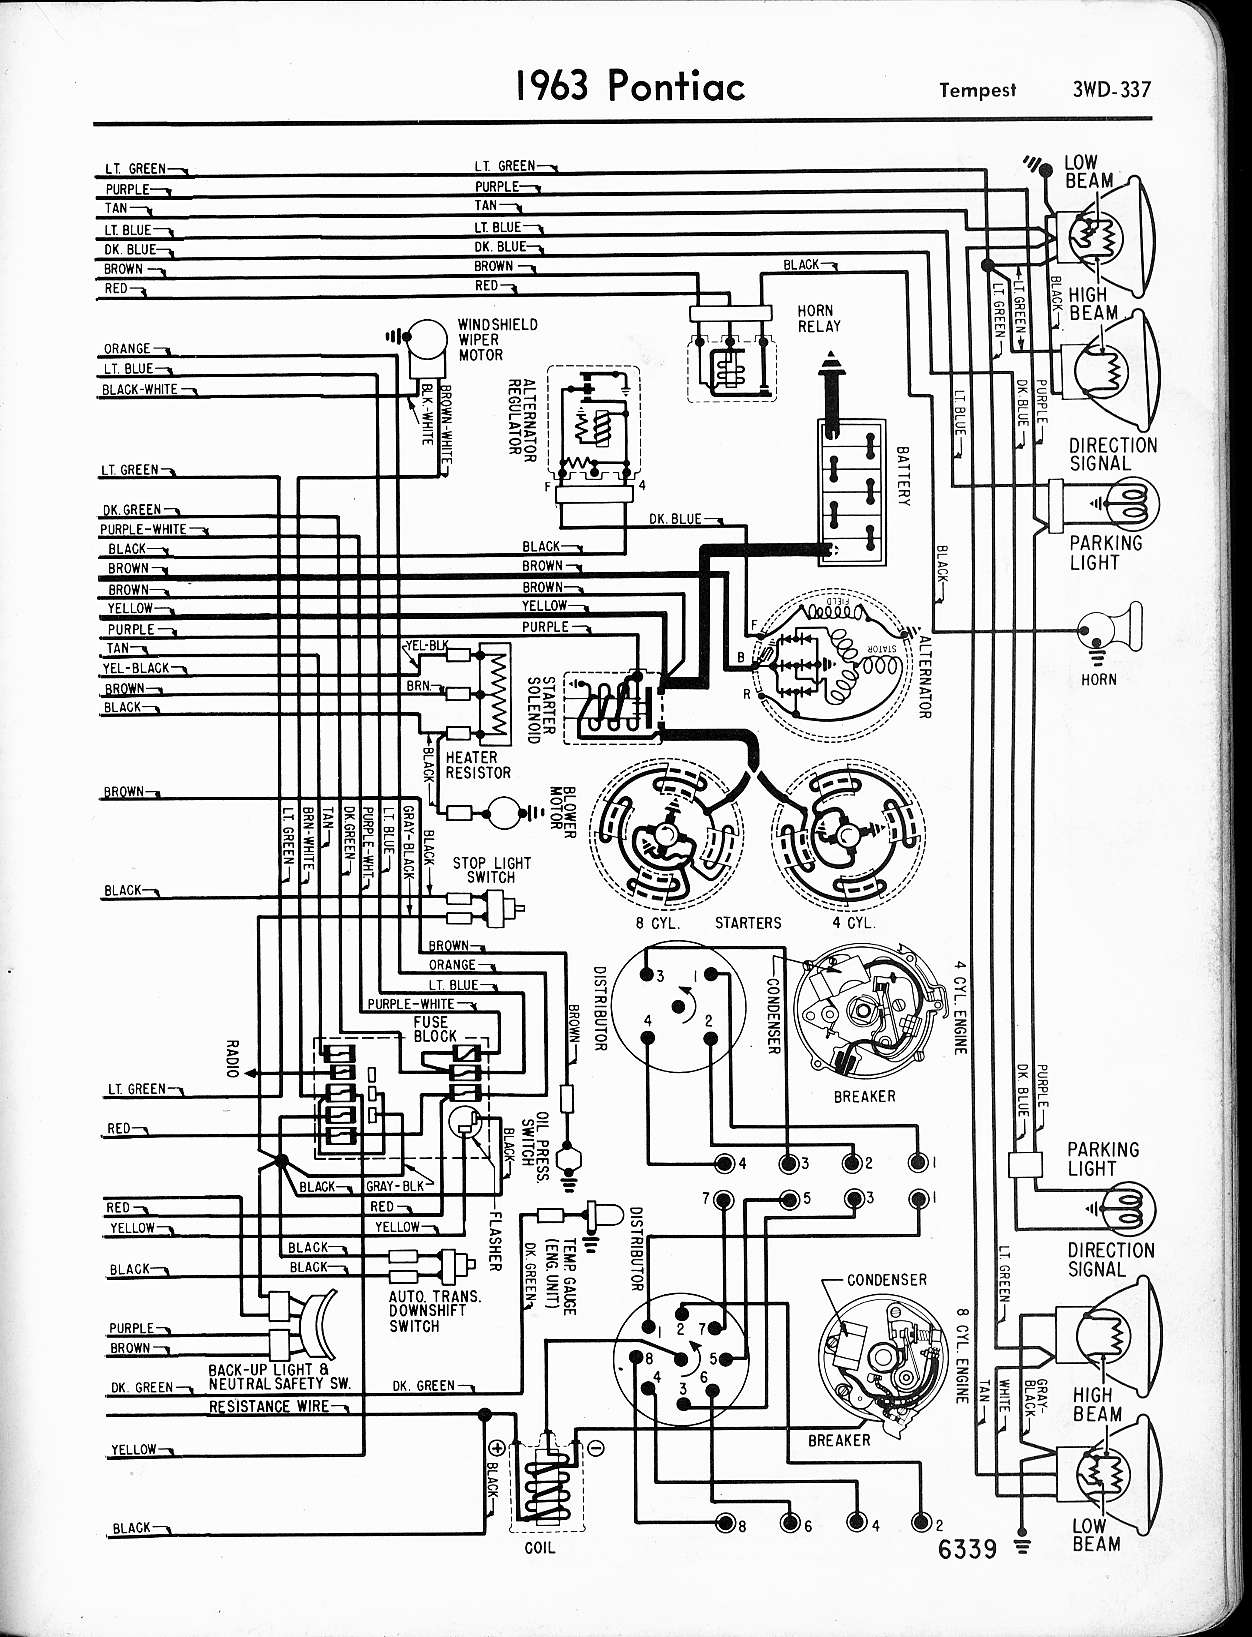 1968 Pontiac Bonneville Wiring Diagram Great Installation Of 2001 Sle Fuse Box Rh 31 Pfotenpower Ev De Ssei